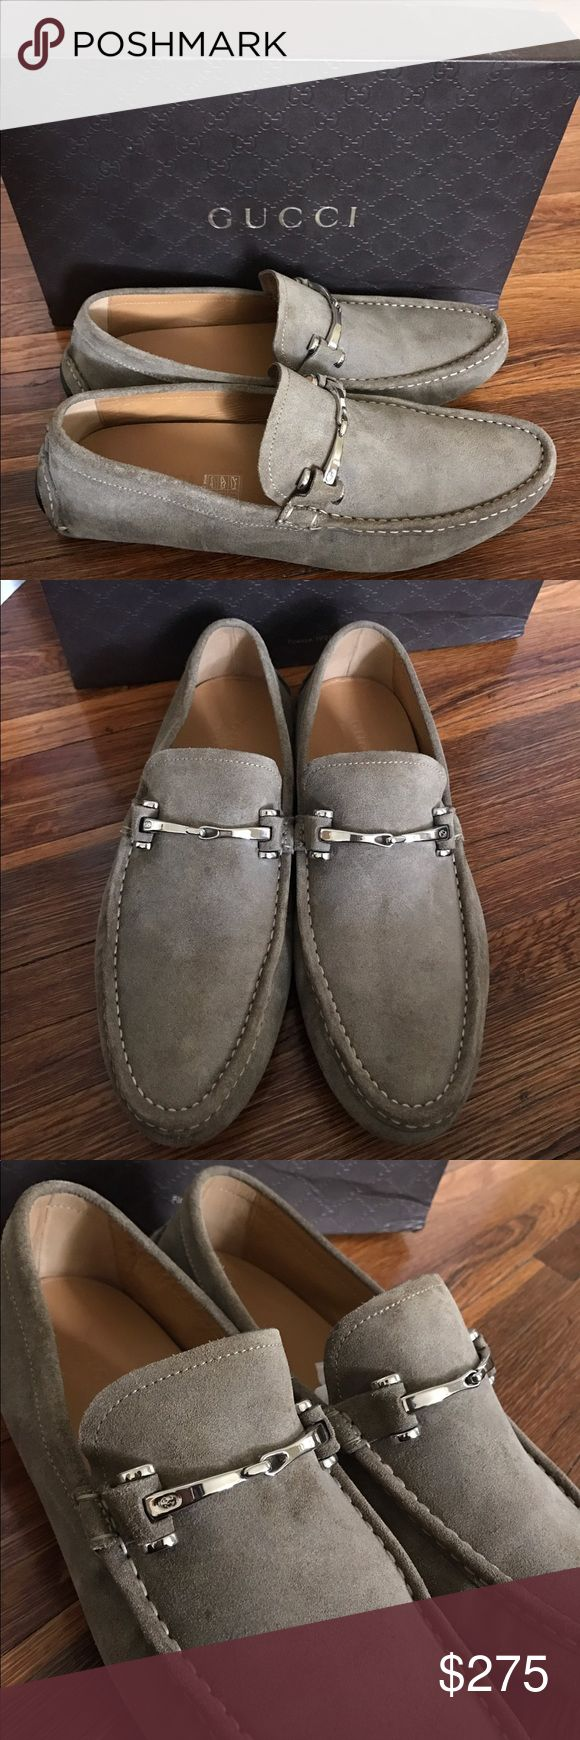 Men's Gucci Suede Loafers Like new Gucci loafers for men. Taupe colored with silver hardware. Worn only once!  Size 9, they run about a half size too big. No trades. Open to offers. Gucci Shoes Loafers & Slip-Ons